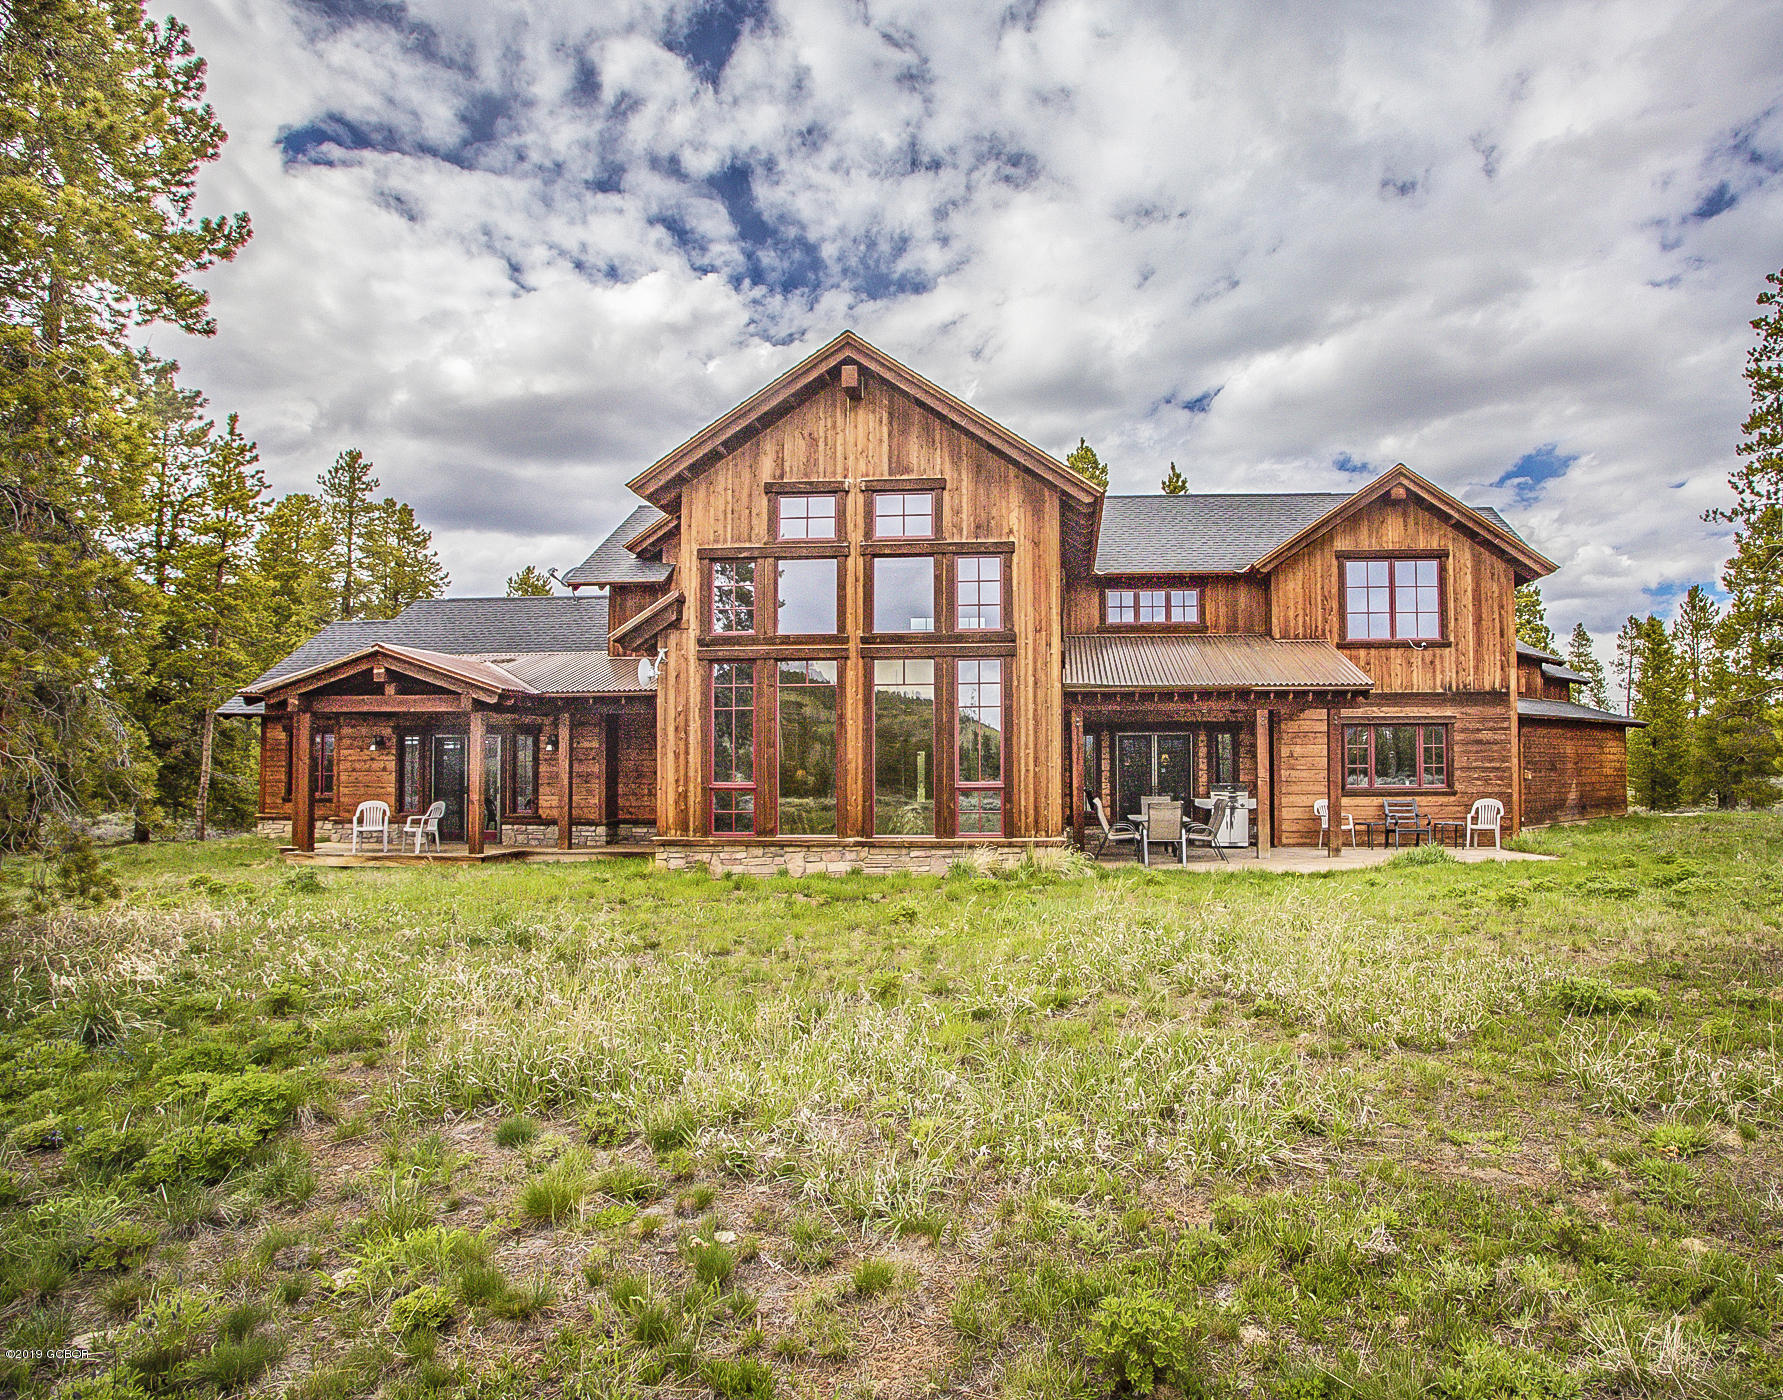 MLS# 19-704 - 64 - 612 County Rd 6237  #, Granby, CO 80446